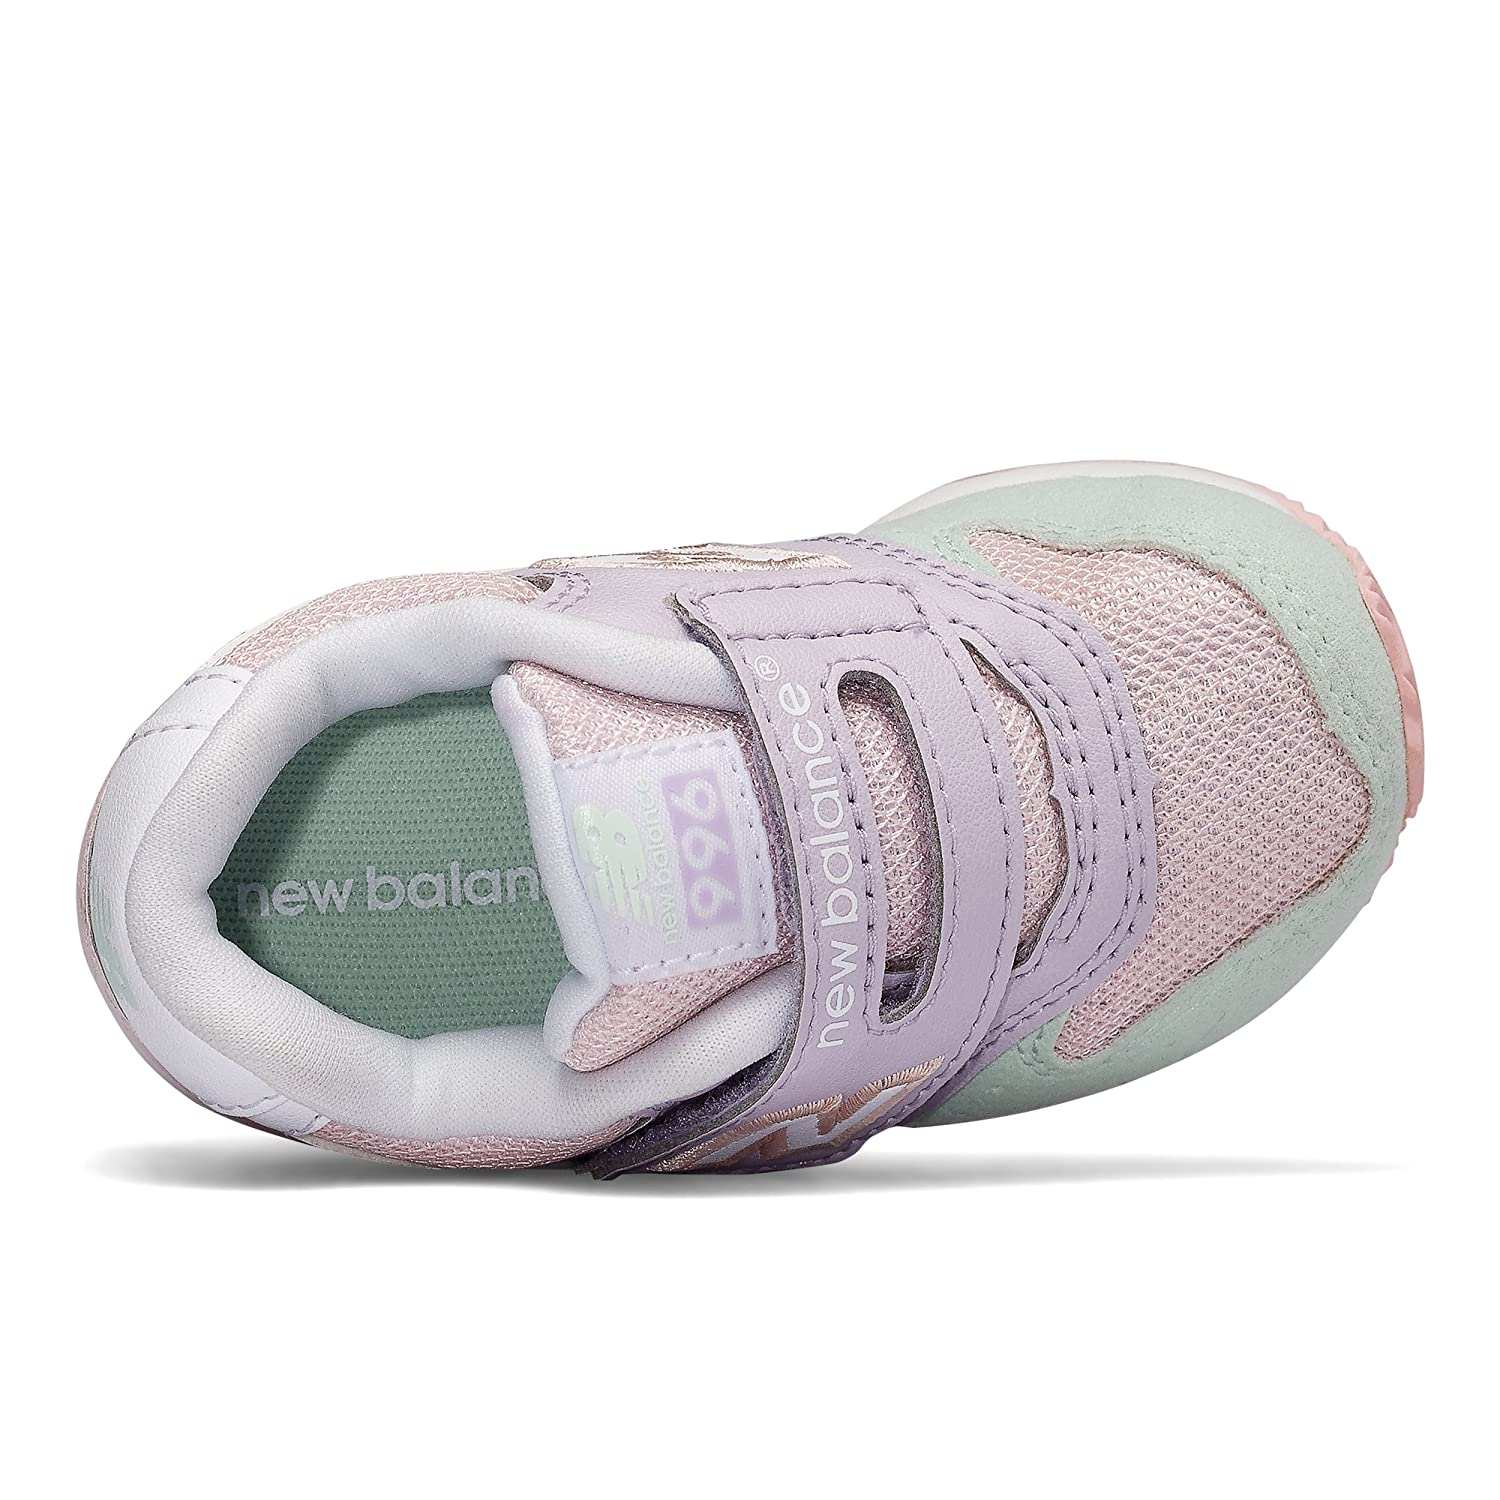 New Balance Fs996 Fs996 Fs996 Fille Chaussures Rose 290835